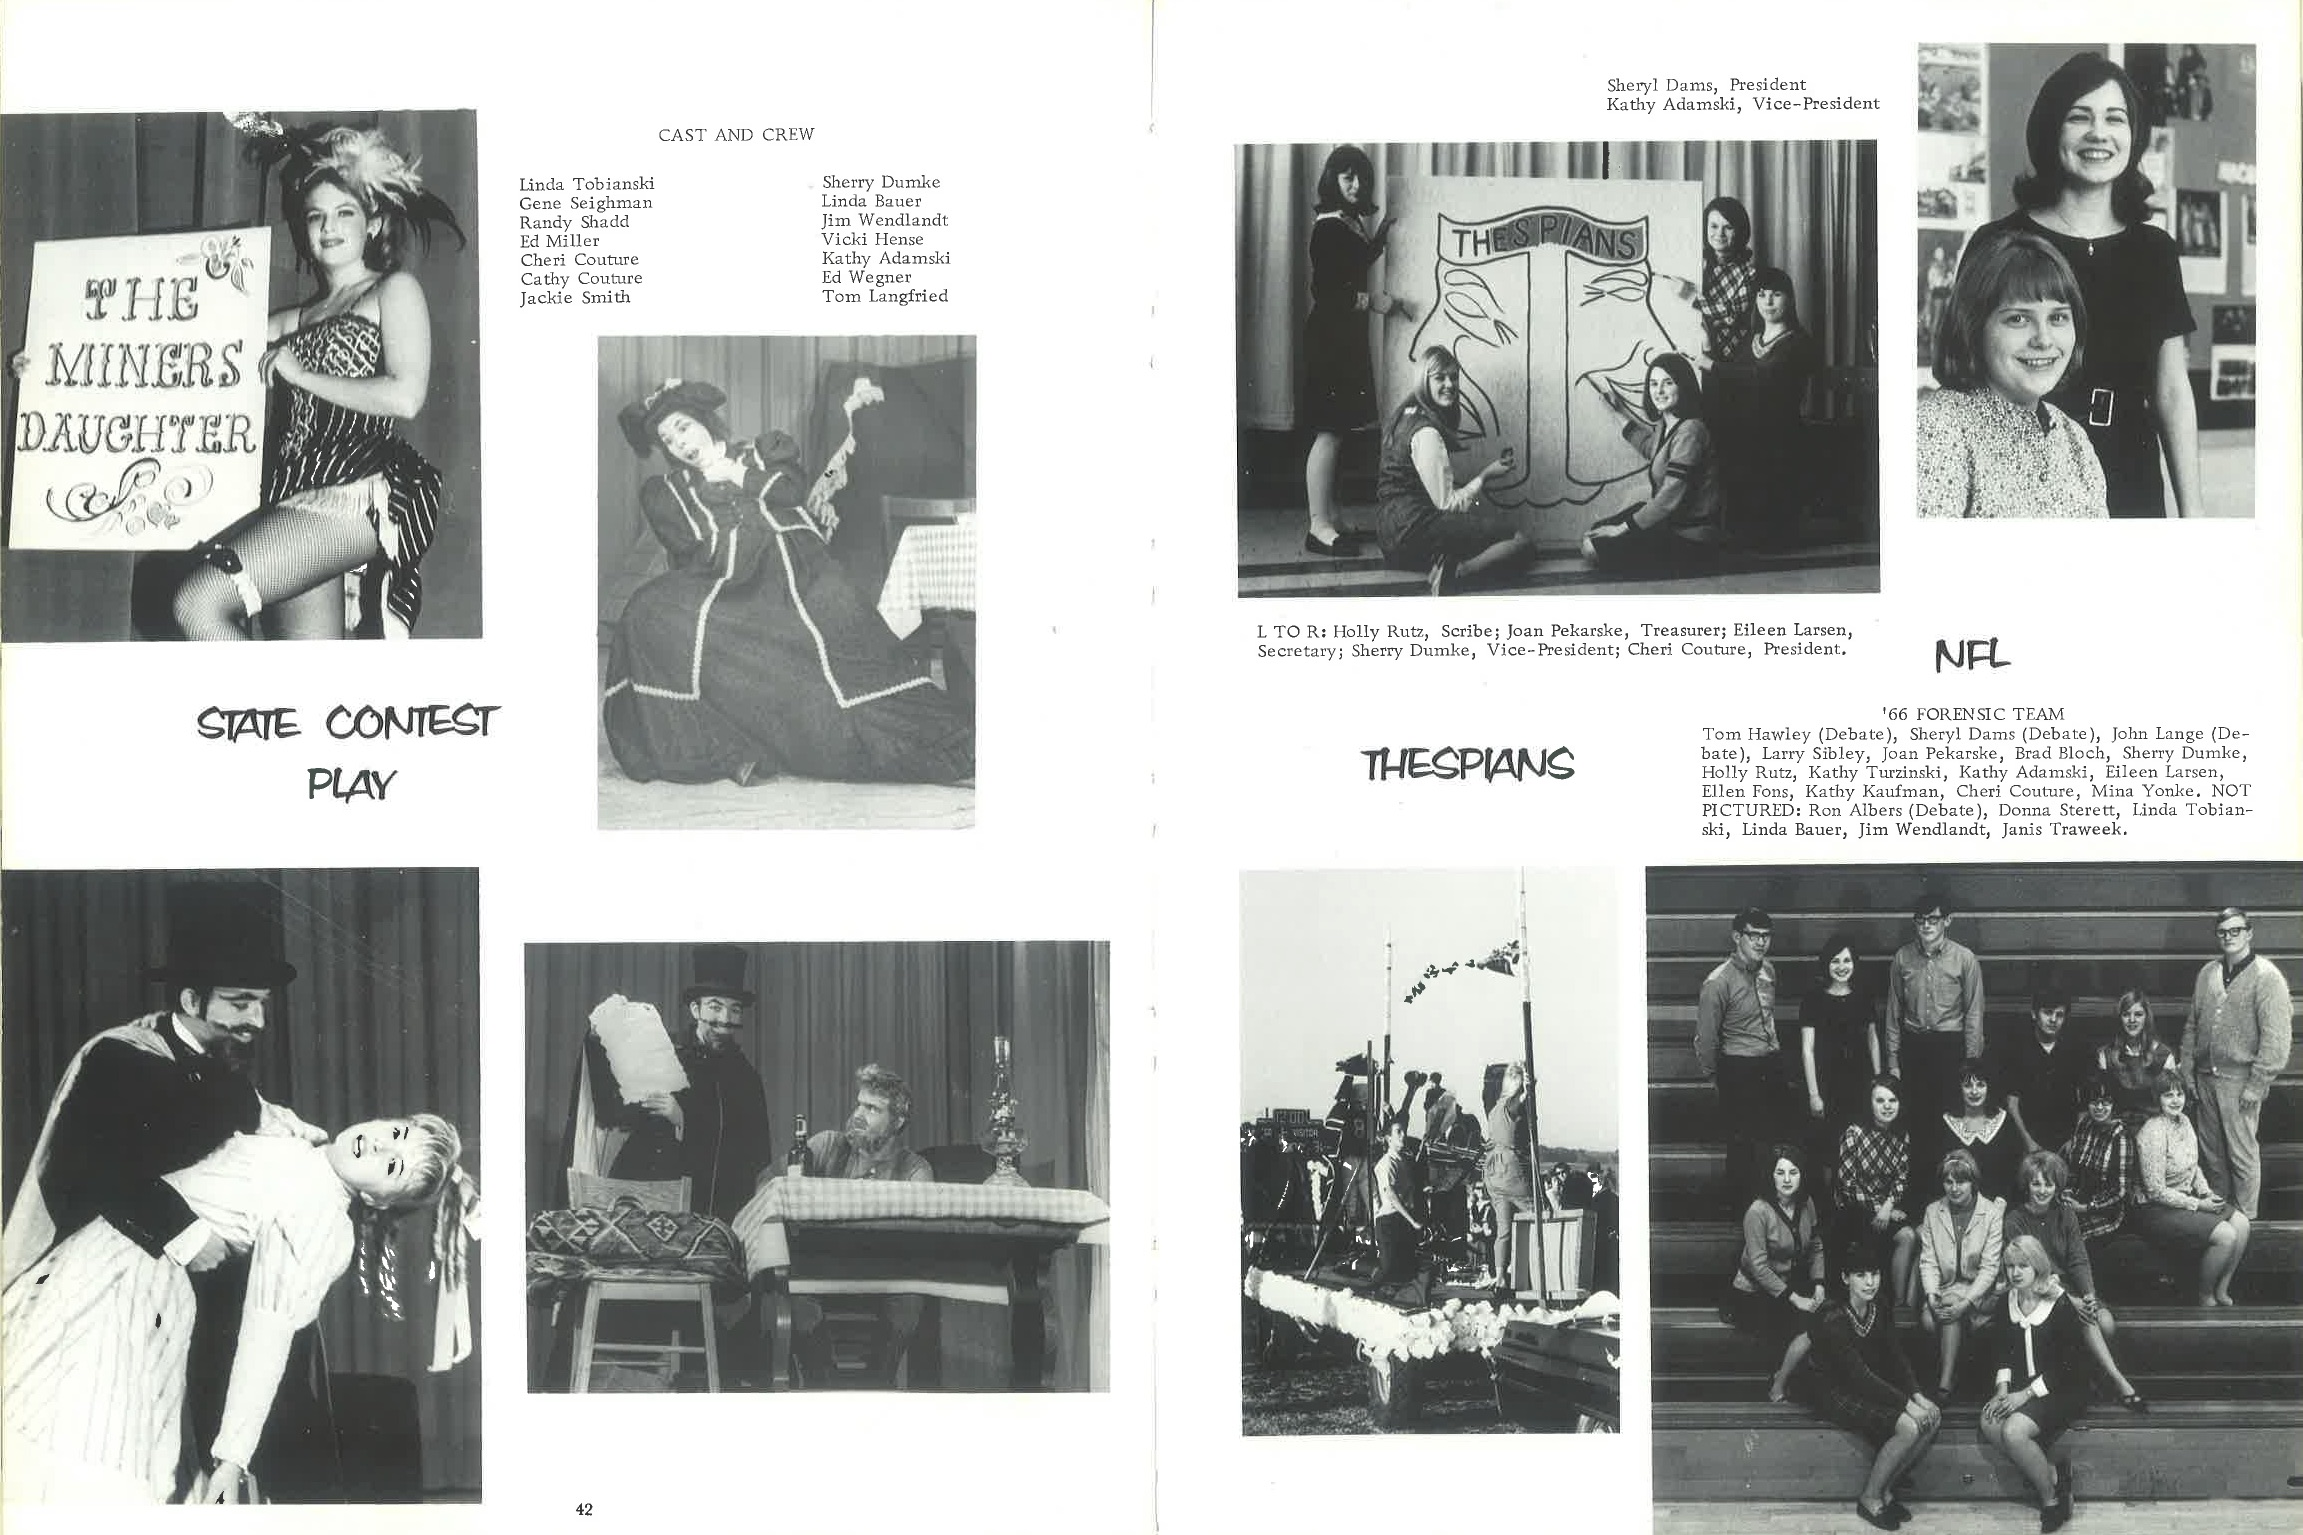 1967_Yearbook_22.jpg